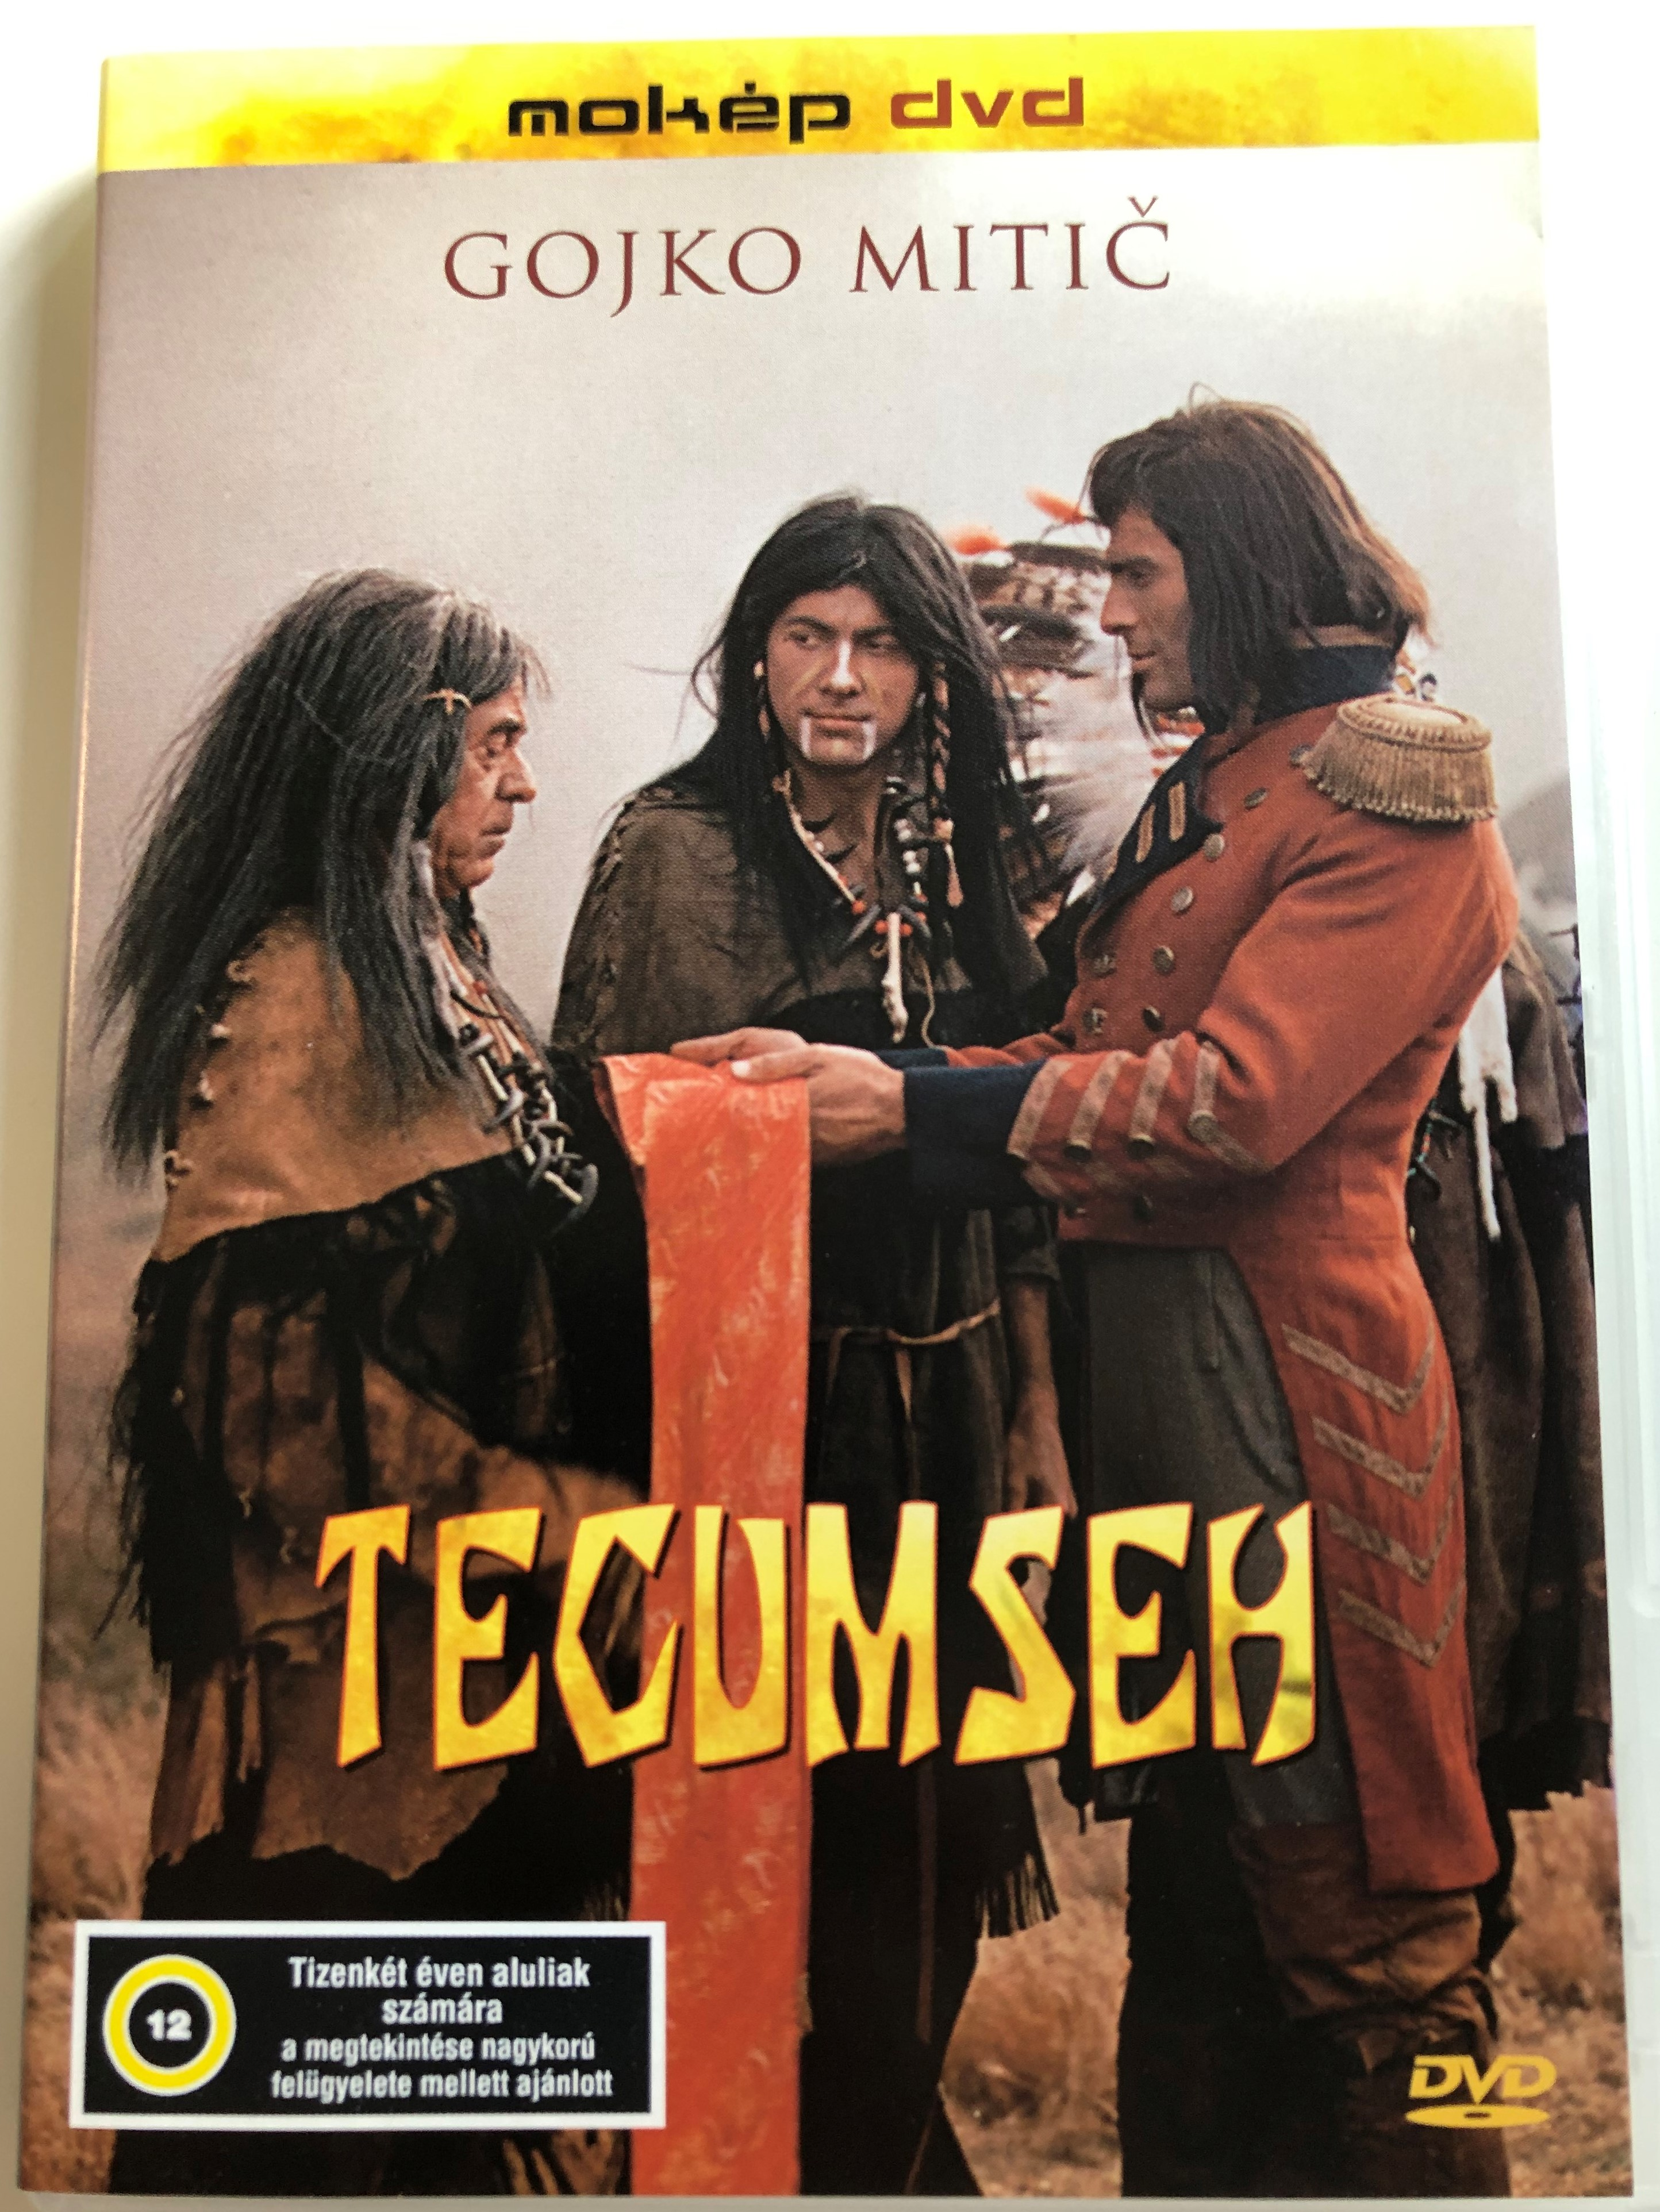 tecumseh-dvd-1972-directed-by-hans-kratzert-1.jpg